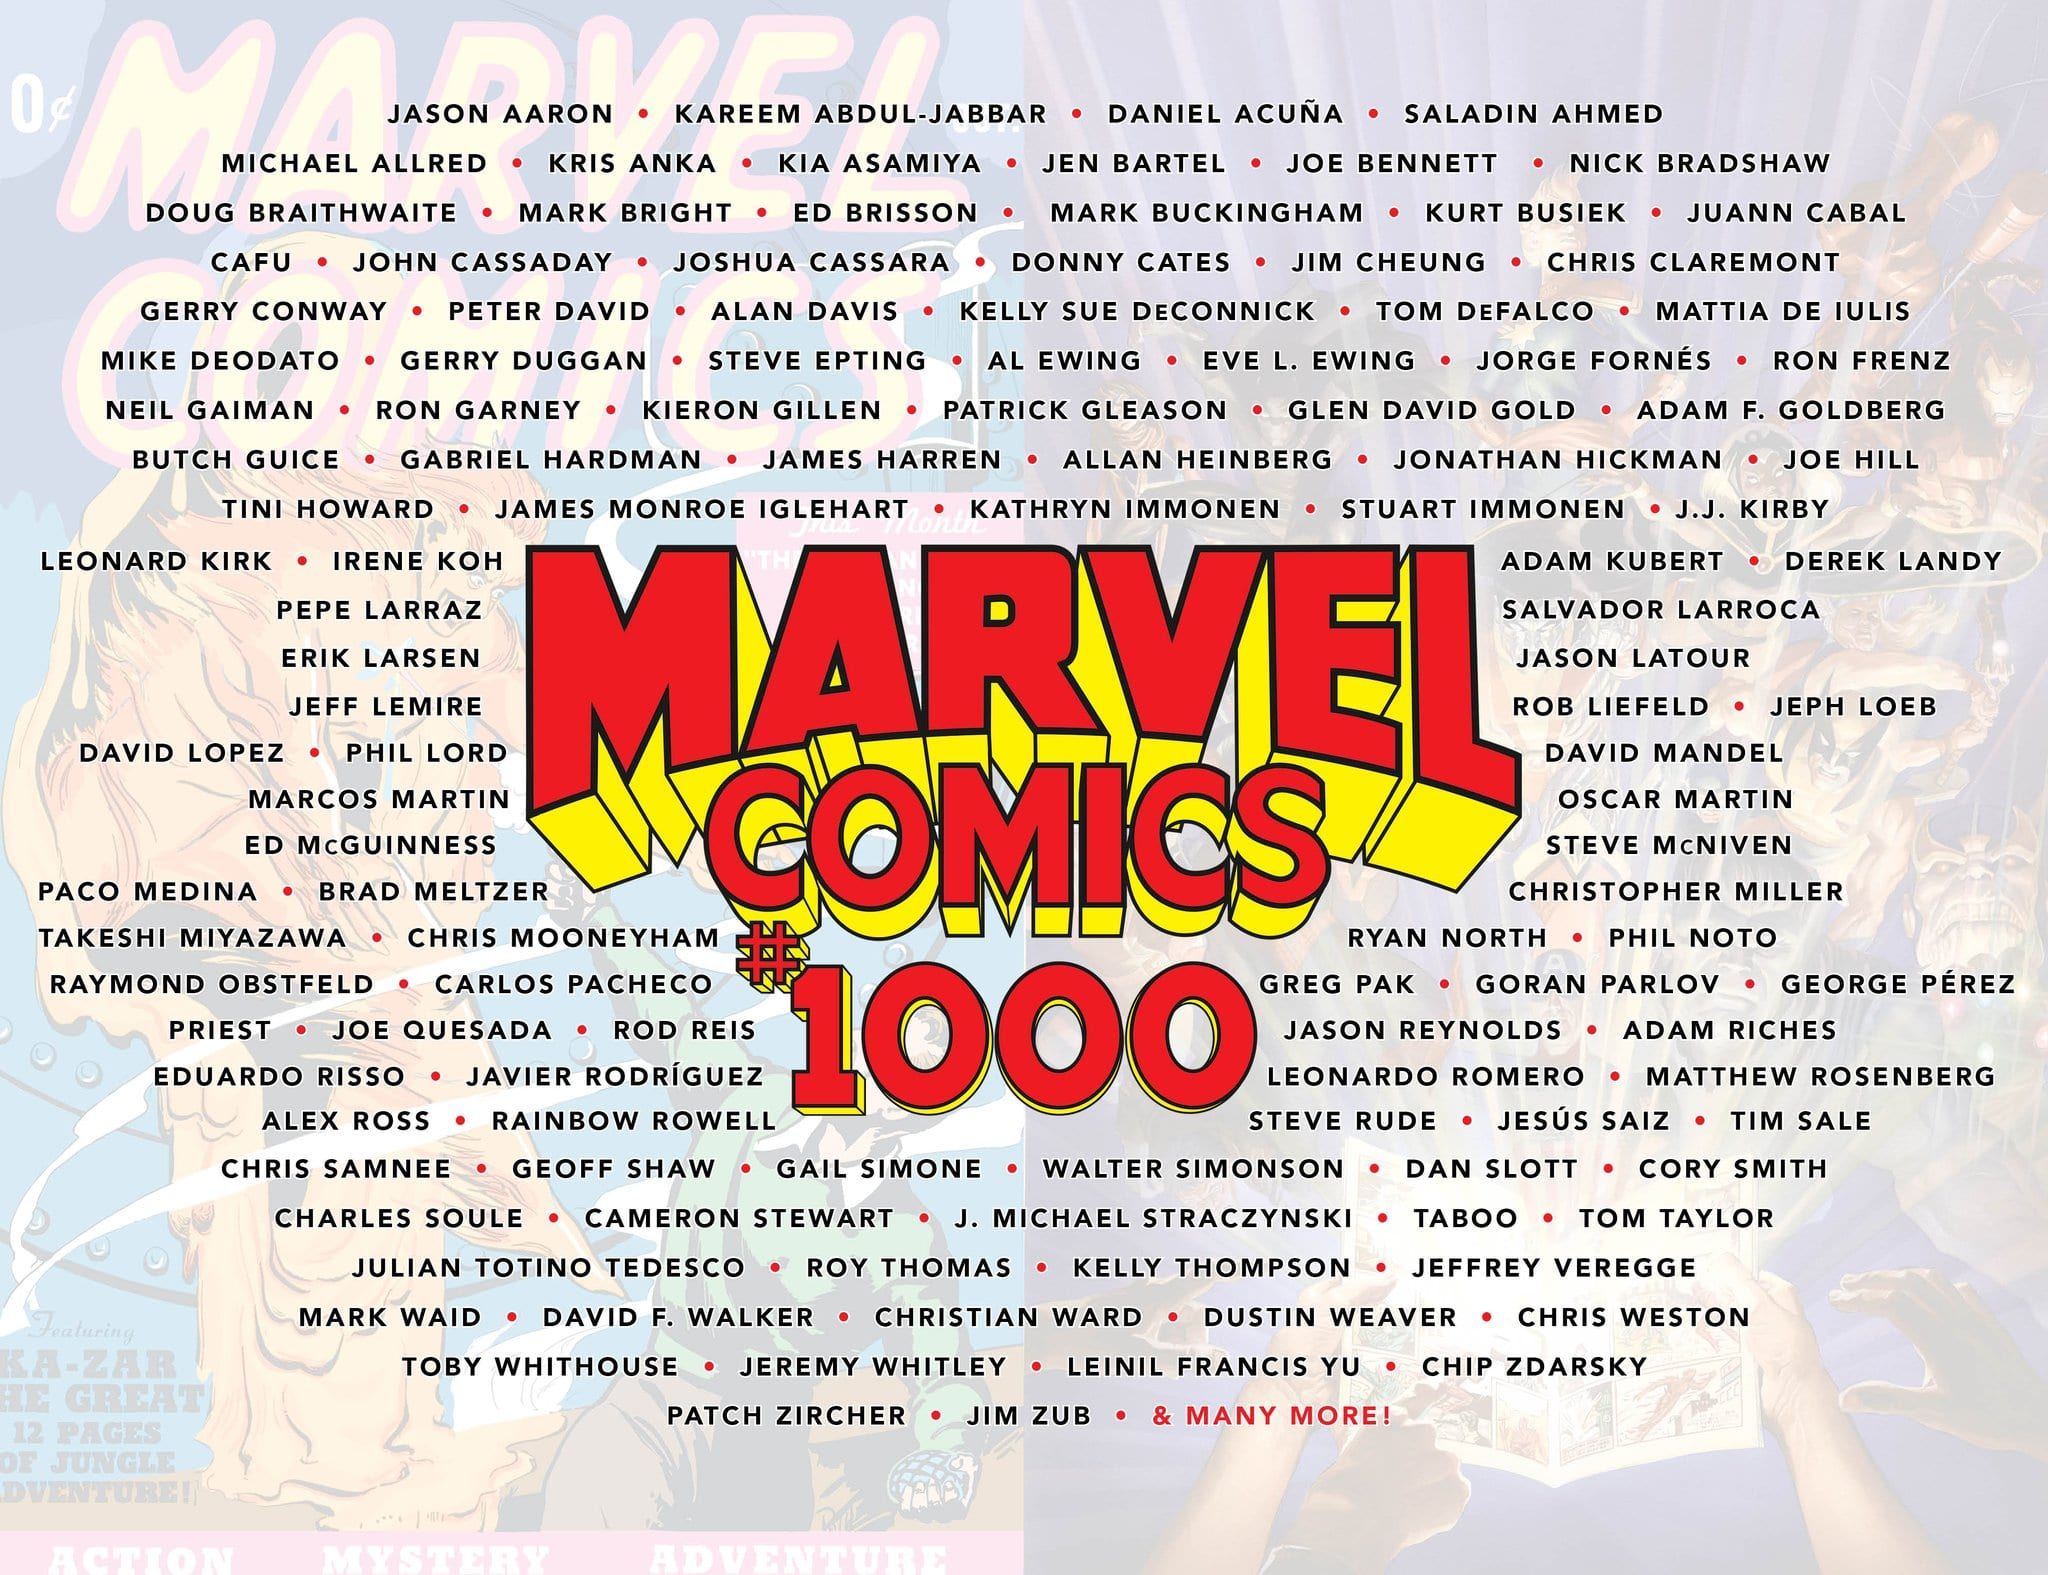 'Marvel Comics' #1000: What We Know So Far 2